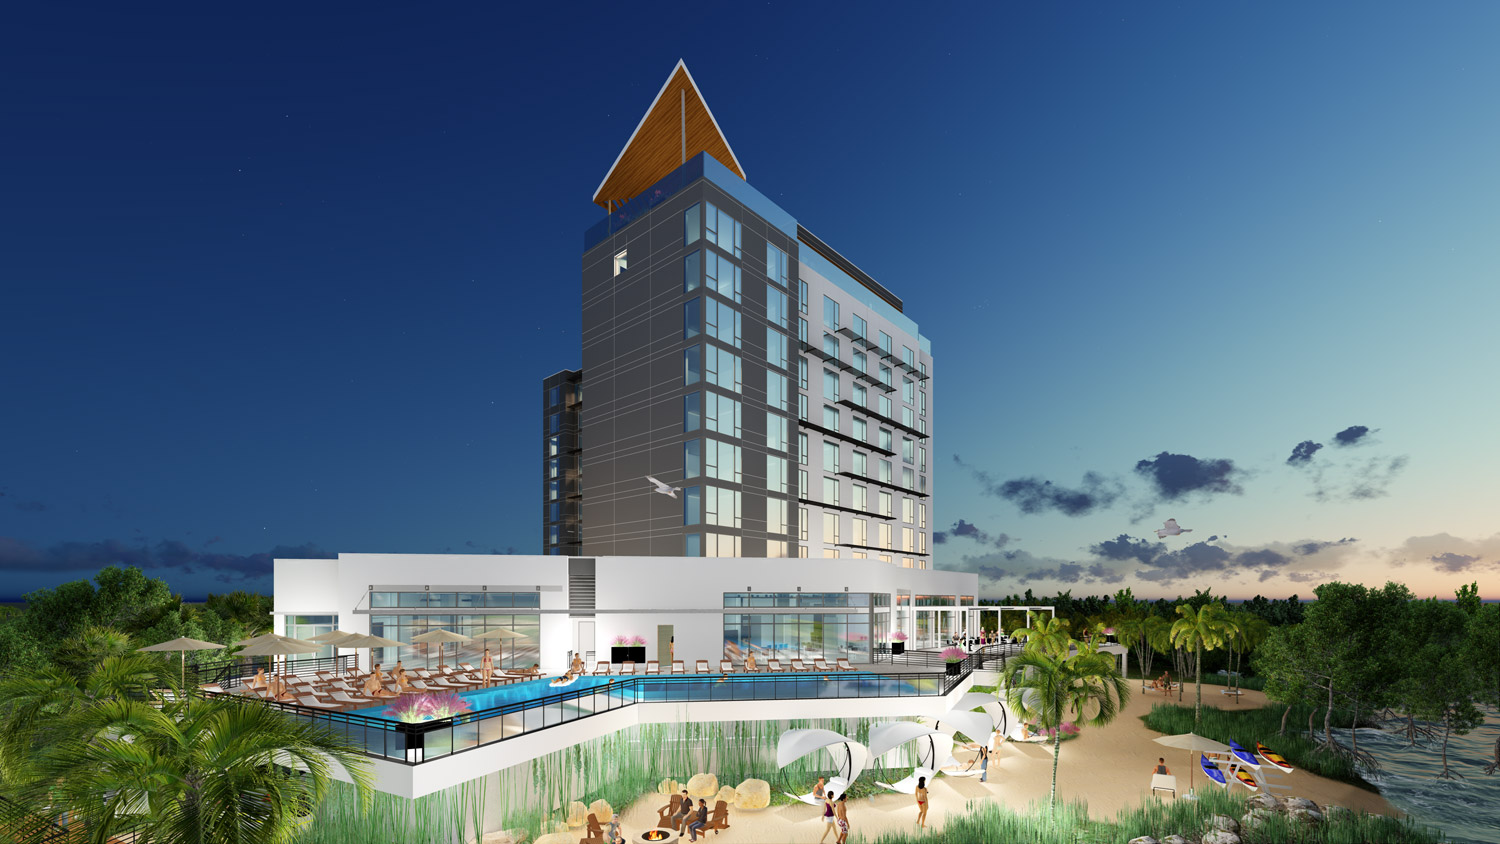 Tampa Bay Autograph Collection Hotel To Open In 2018 Recommend